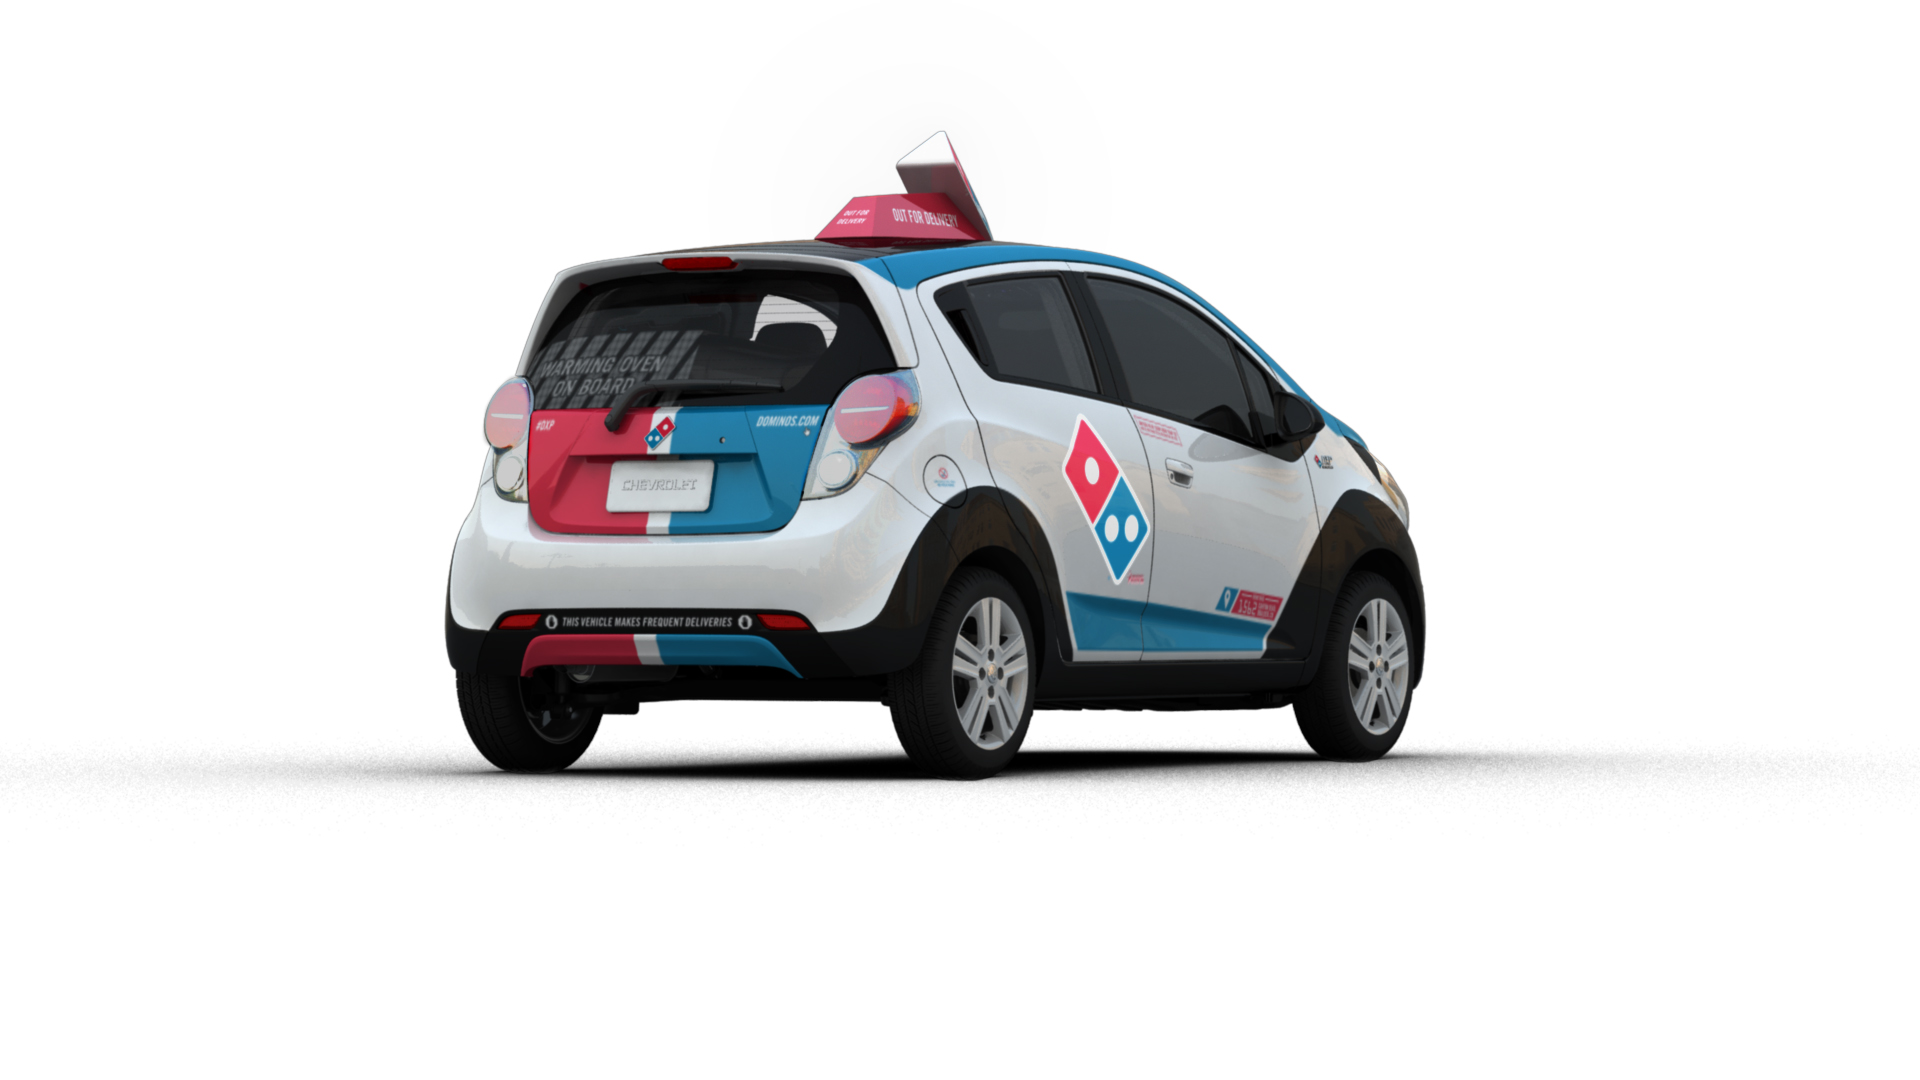 Dominos Just Unveiled A Radical Pizza Delivery Car That Took 4 Automotivepictures 4163321997sc1alternatorwirediagram1jpg Years To Build Adweek